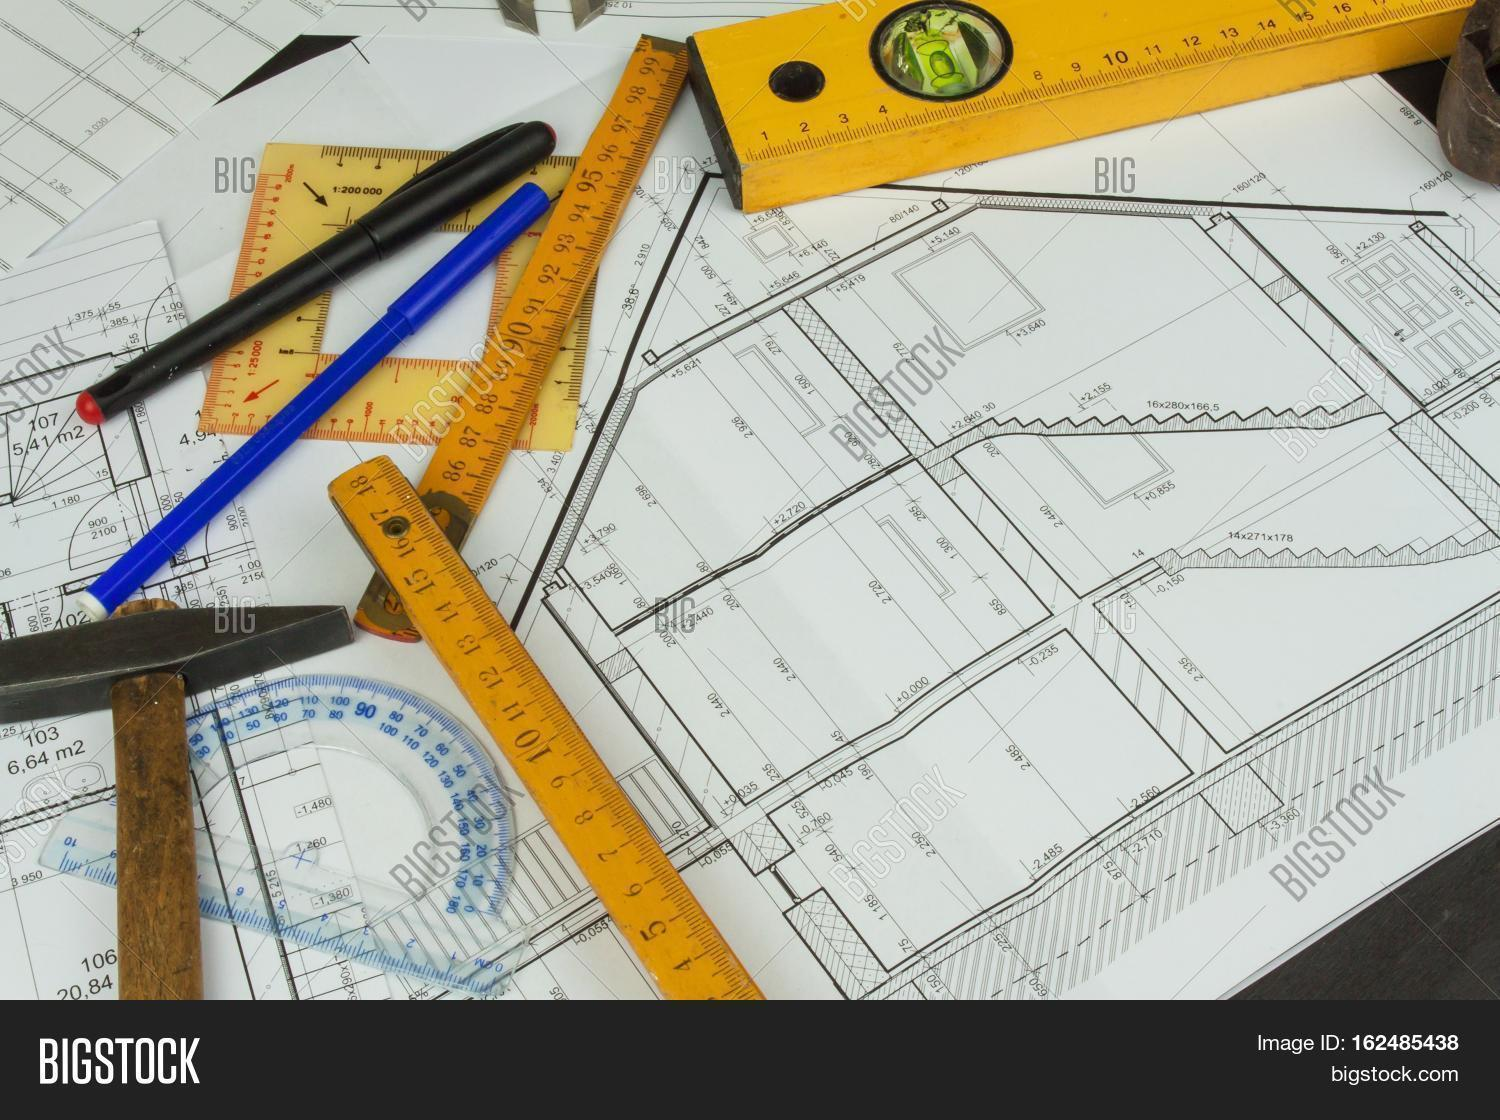 Desk Project Image Photo Free Trial Bigstock Schematic Supervisor Plans Of Building Architectural Floor Plan Designed On